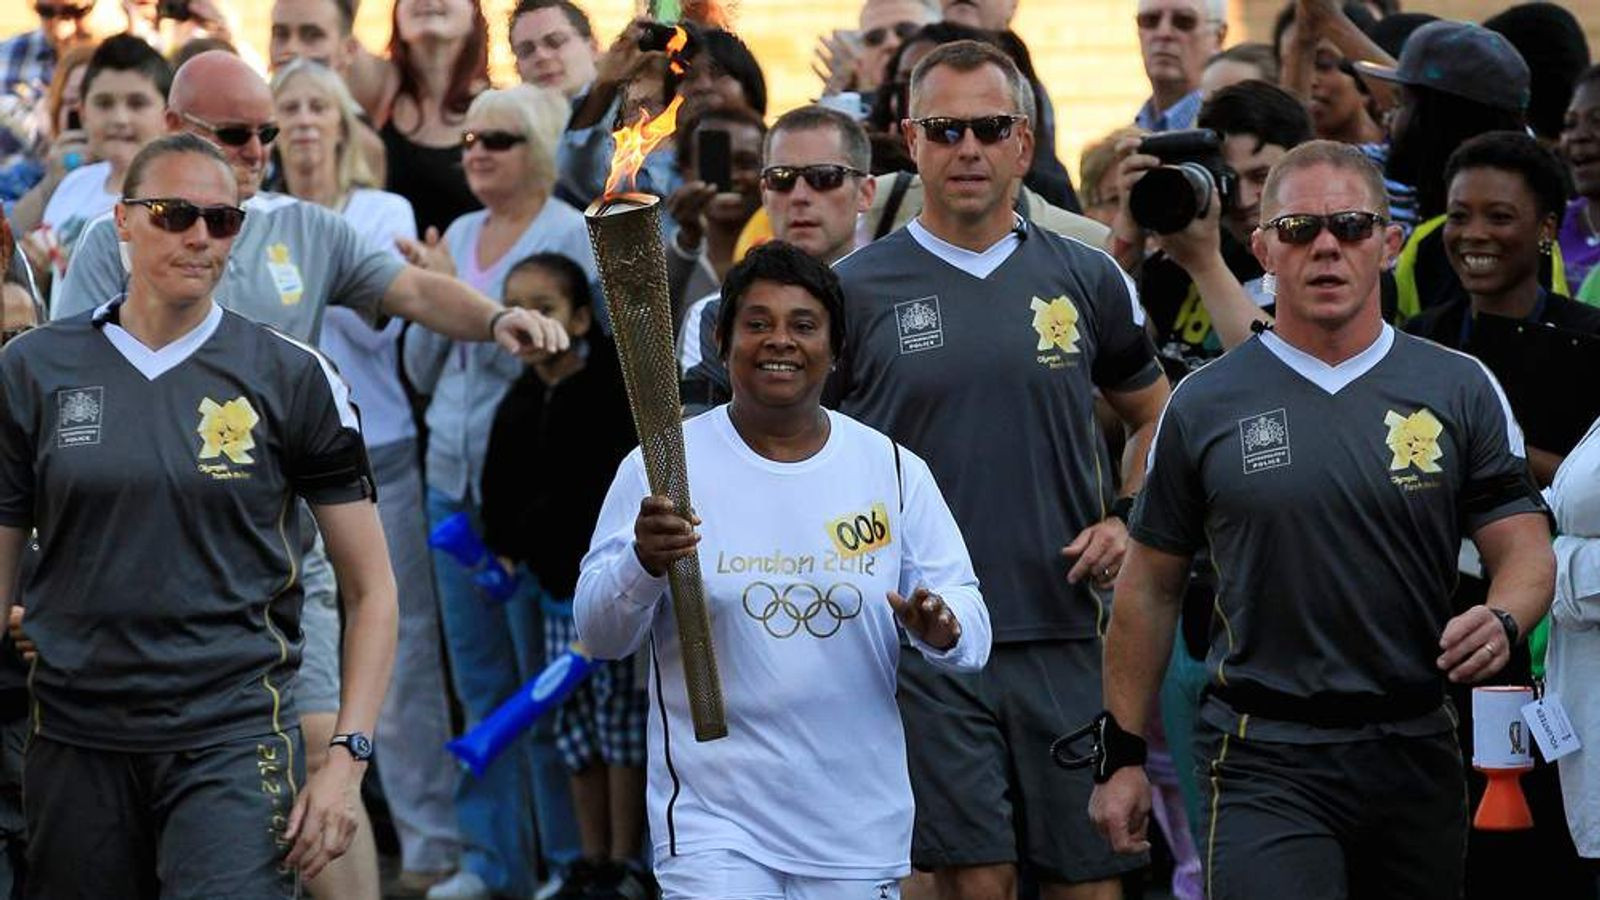 Premier Sheet Metals in Warwickshire made a total of 11,000 copies of the London 2012 Torch ©Getty Images